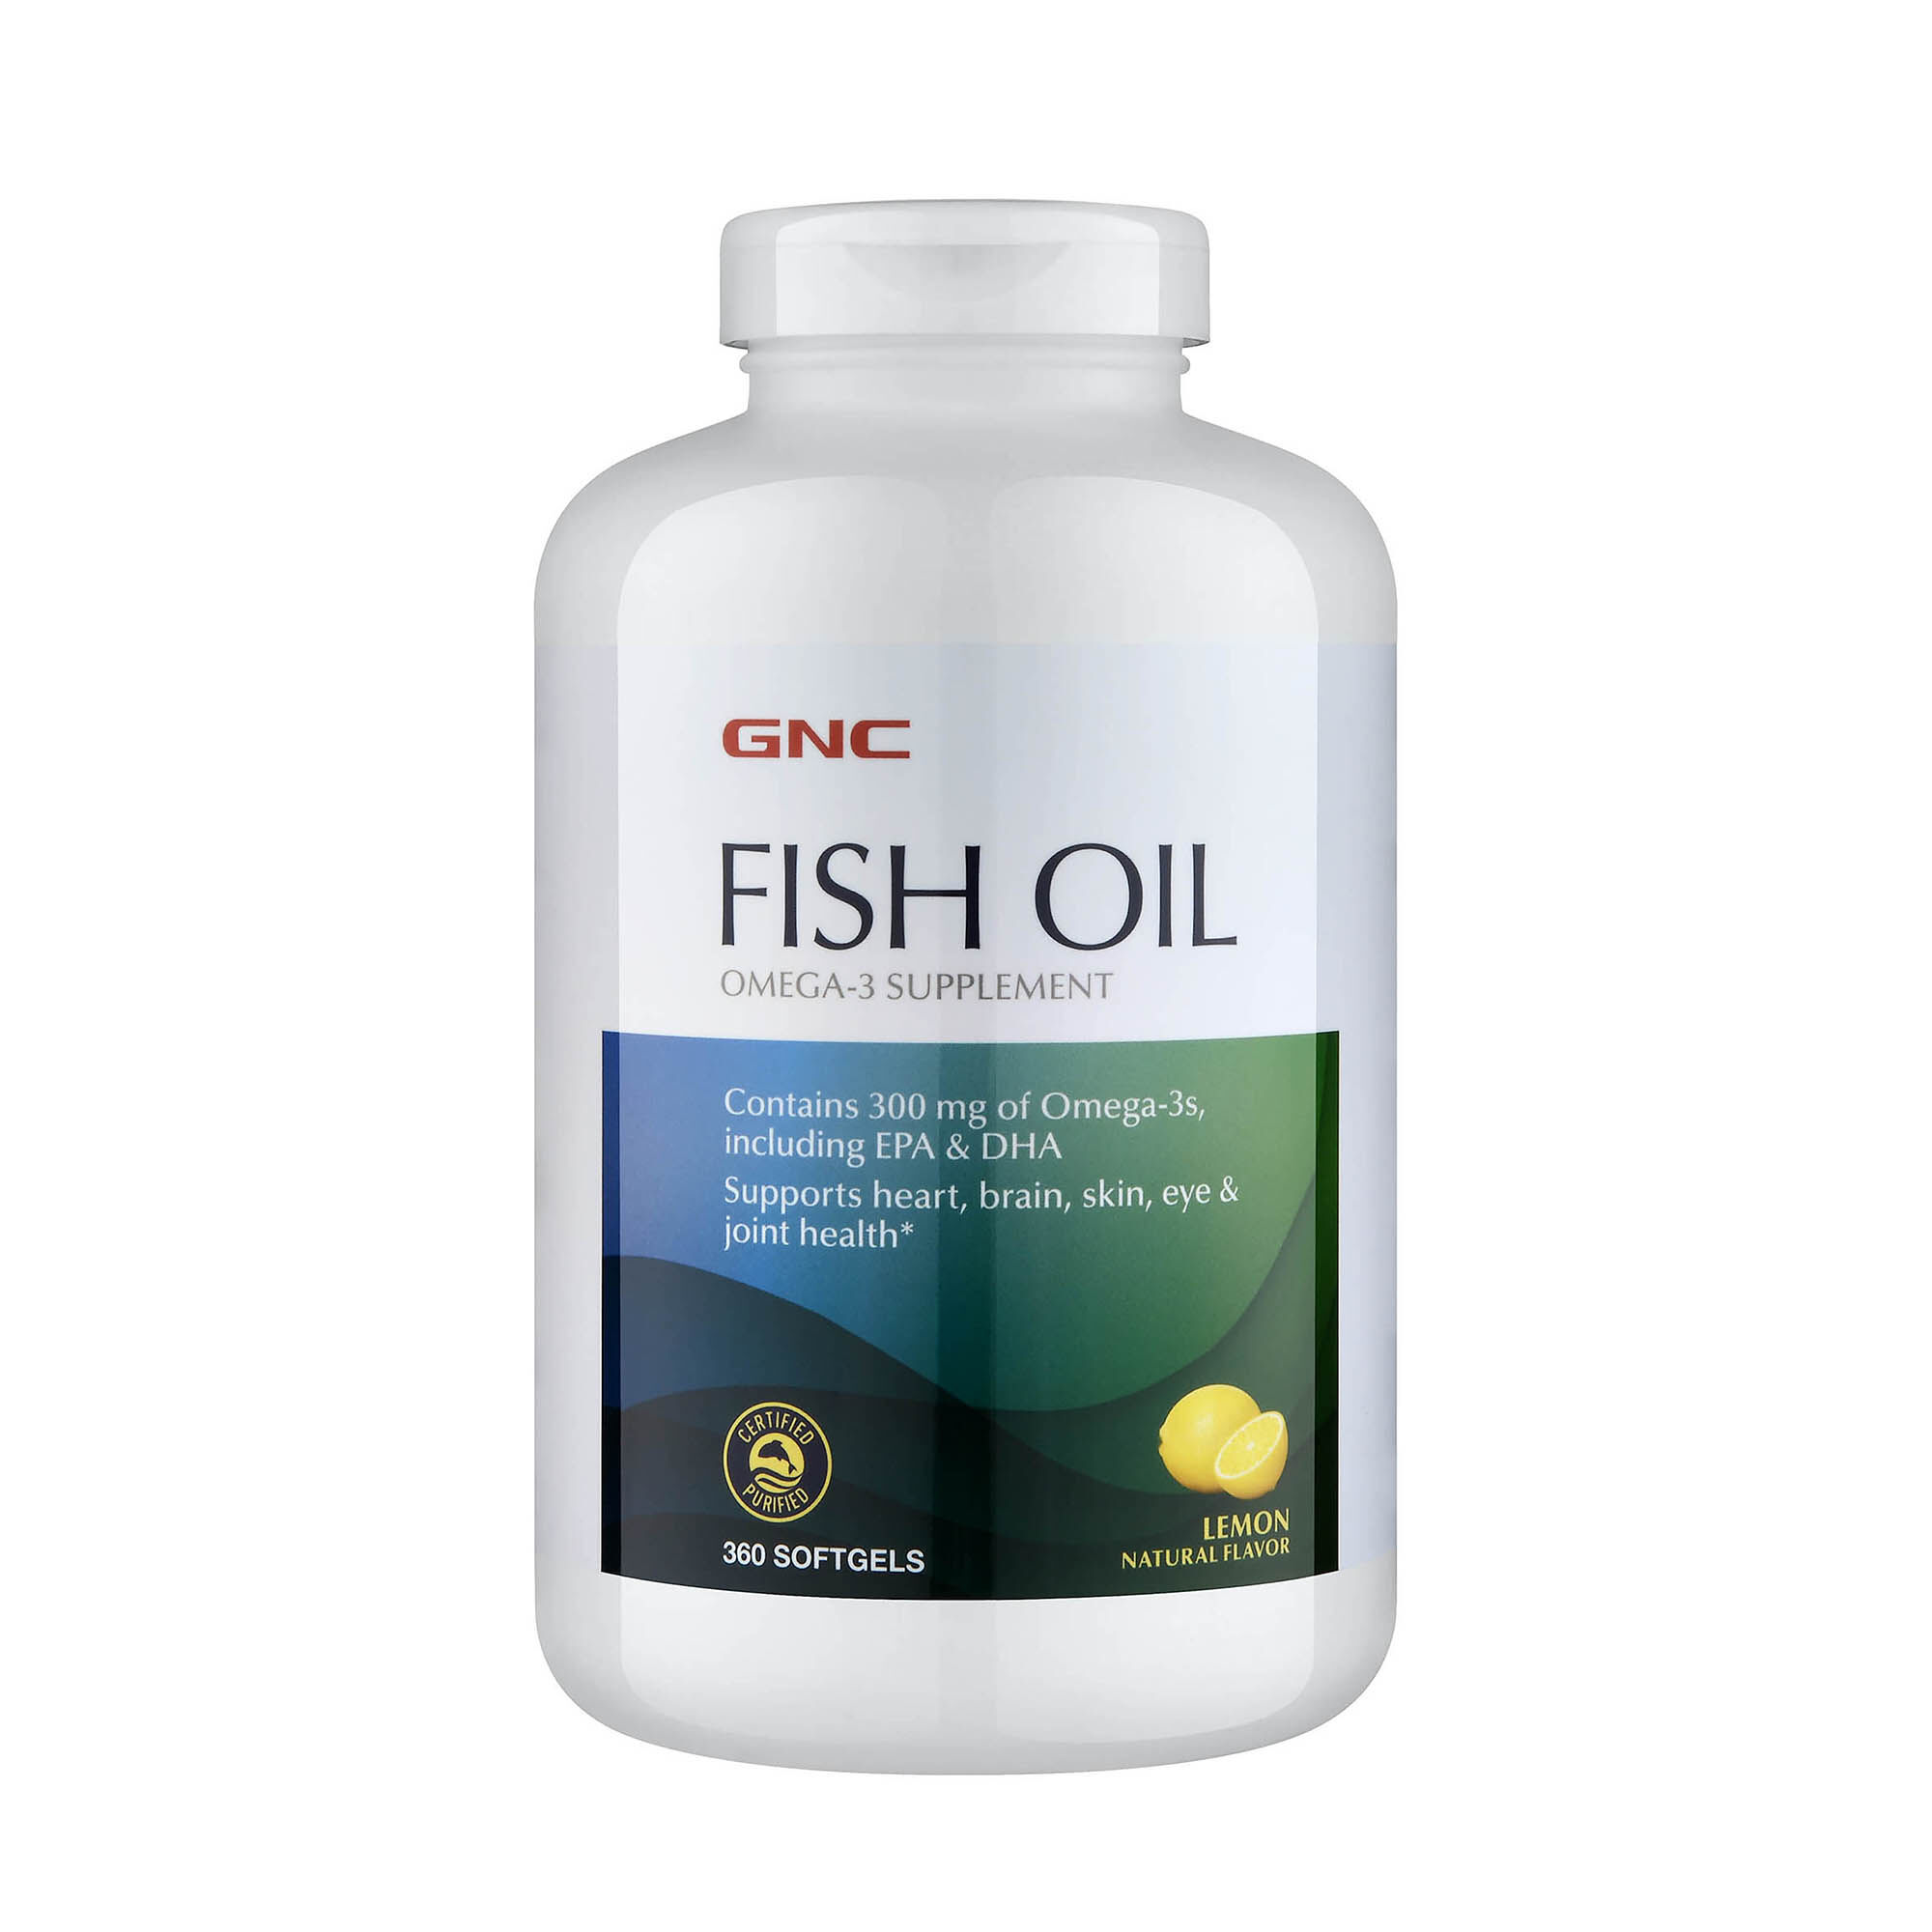 Gnc fish oil safe during pregnancy all the best fish in 2018 for Fish oil during pregnancy